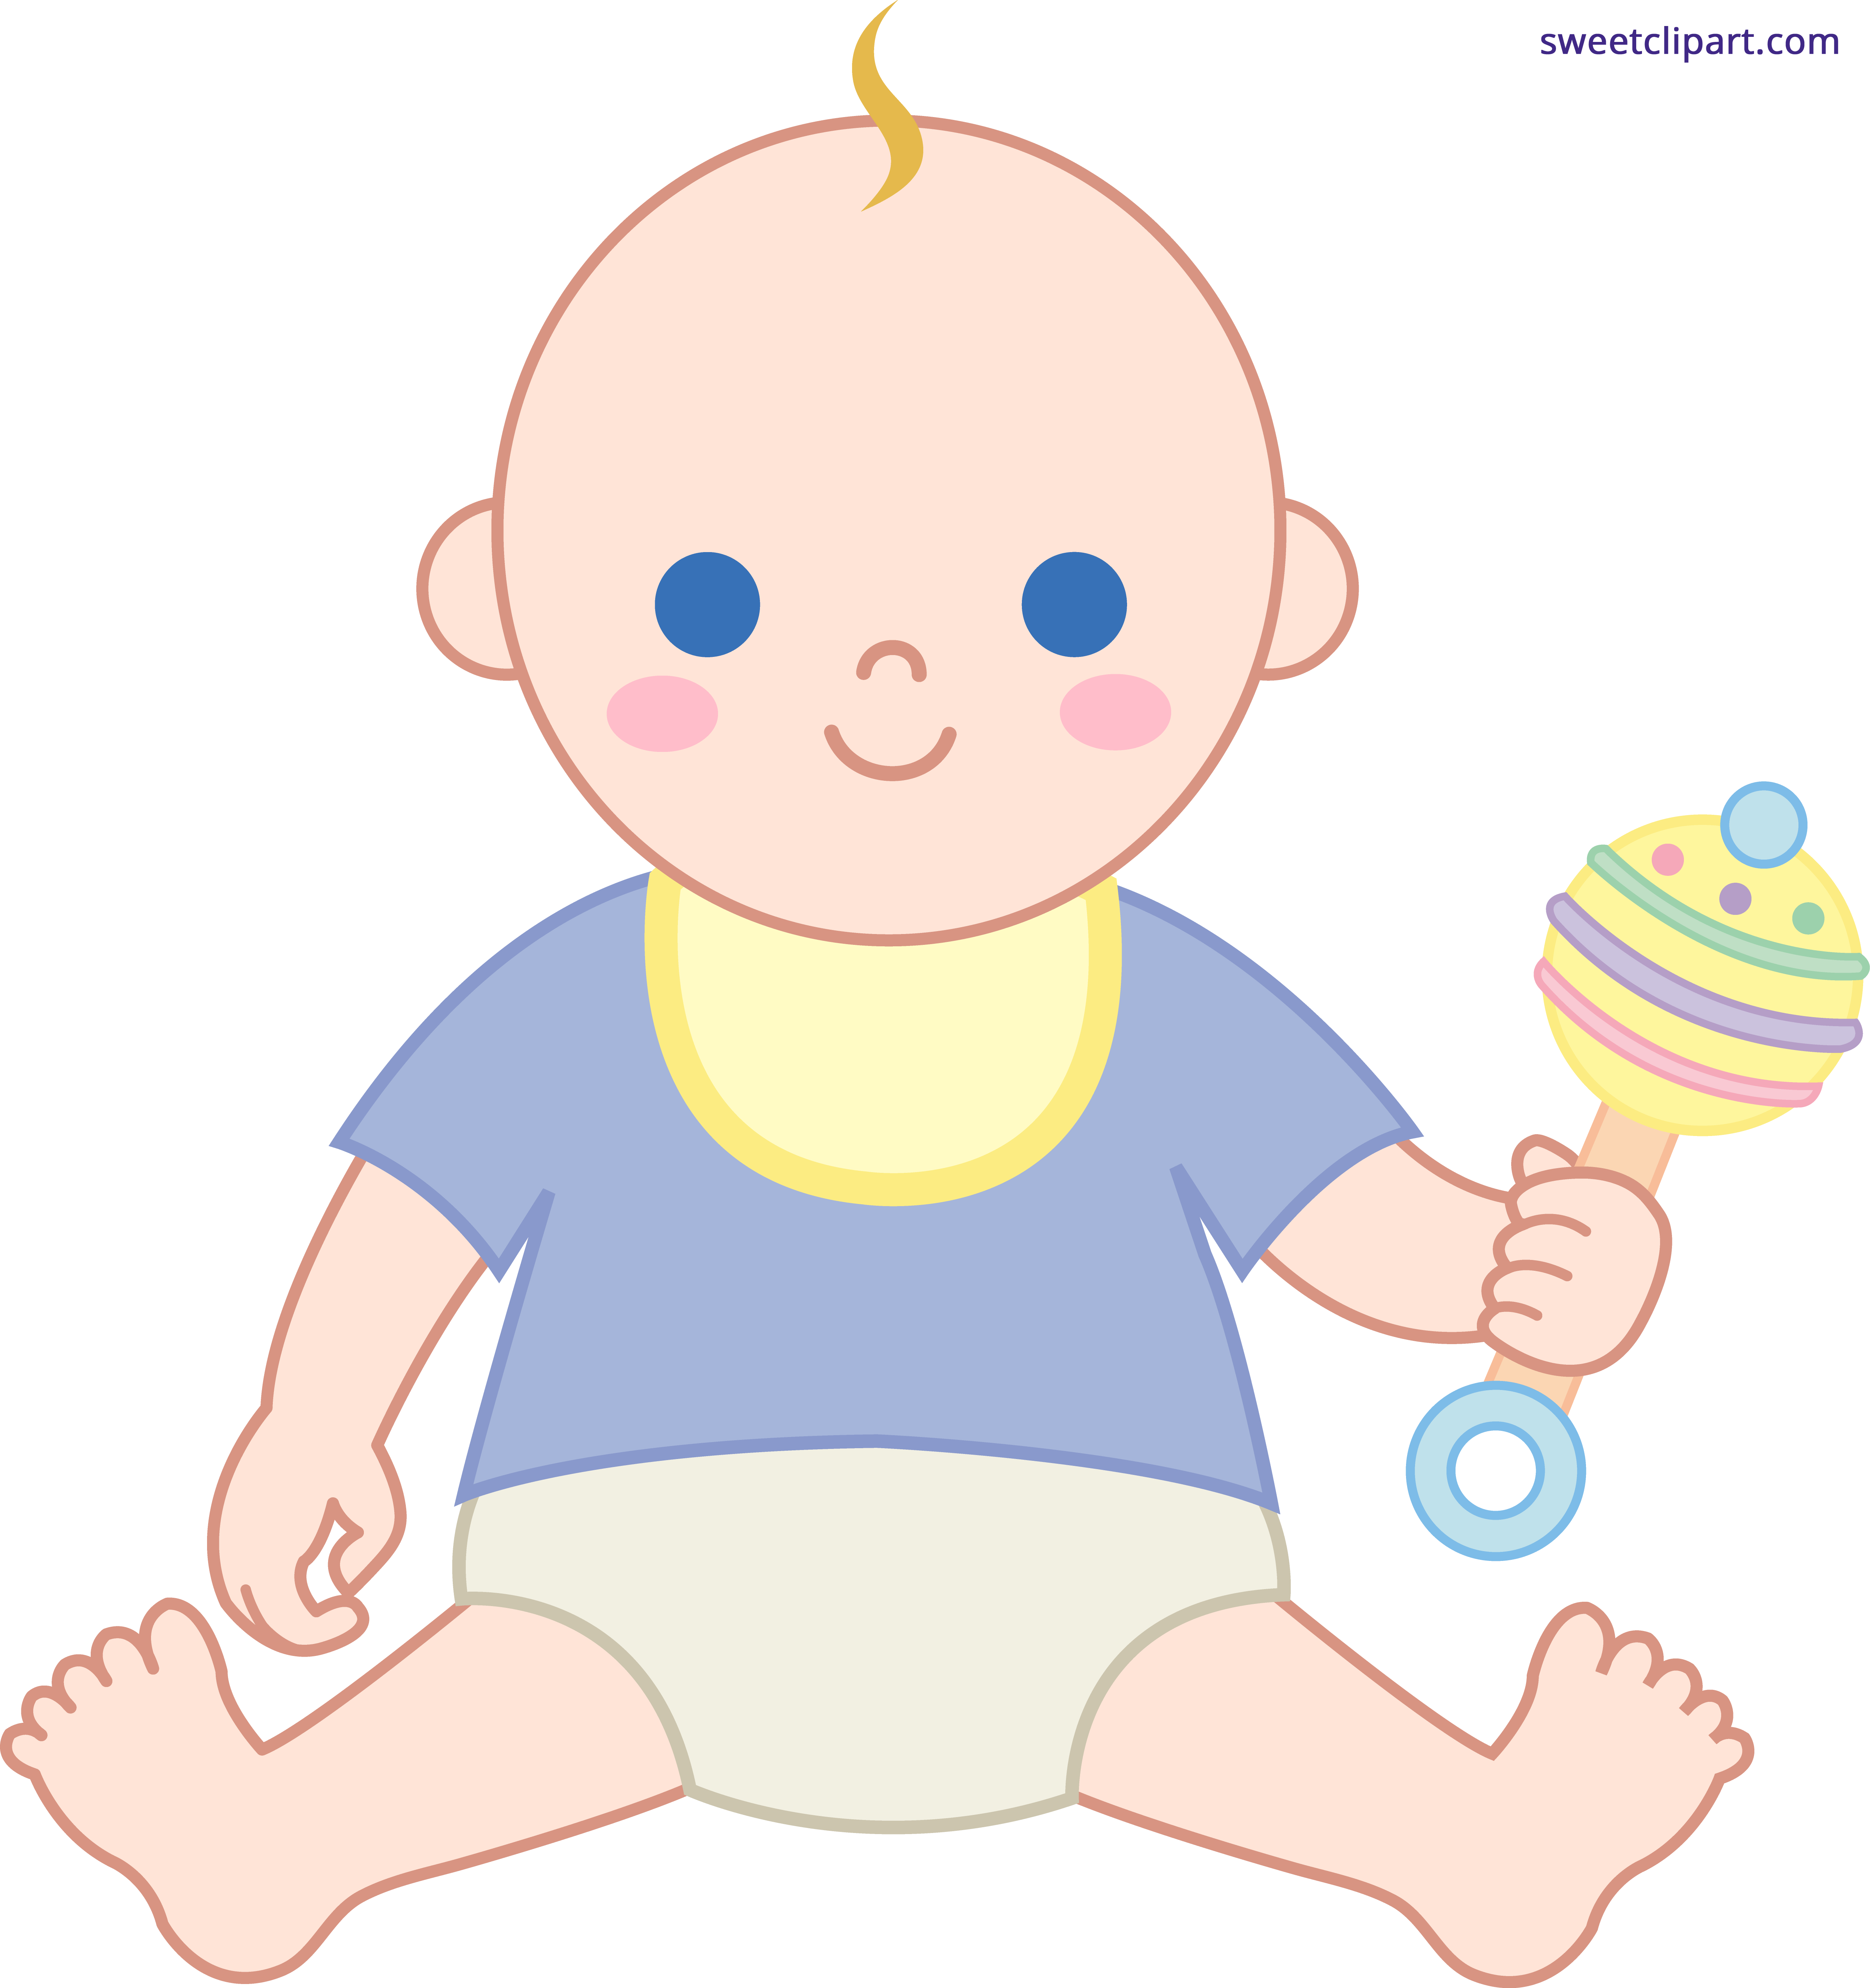 Excited clipart wonderful. Baby boy sweet clip